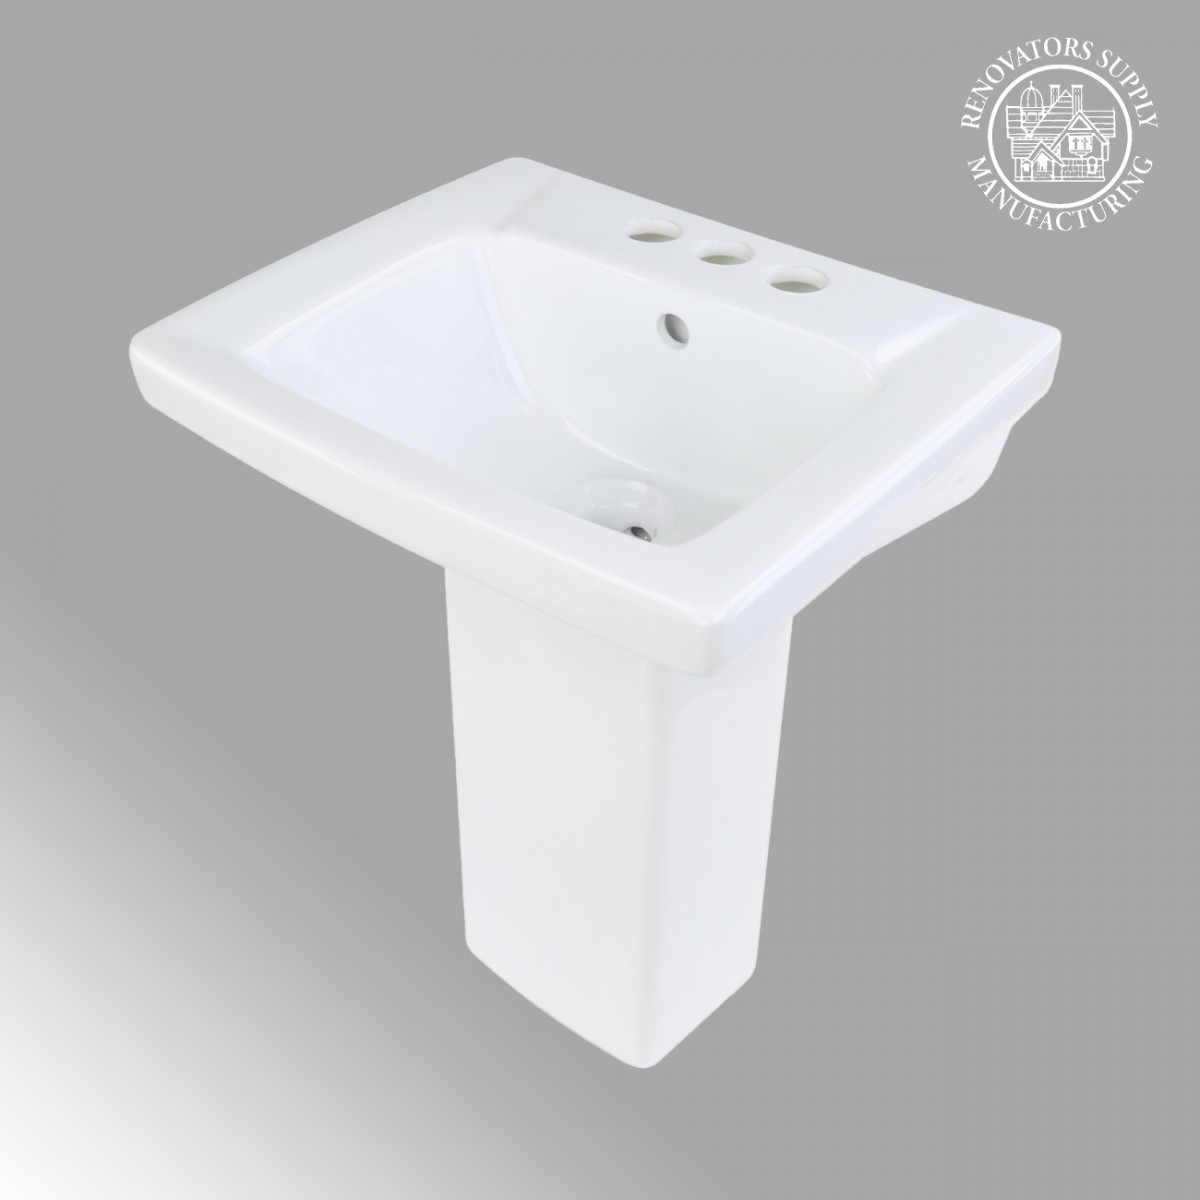 Childrens White Pedestal Sink Grade A Vitreous China